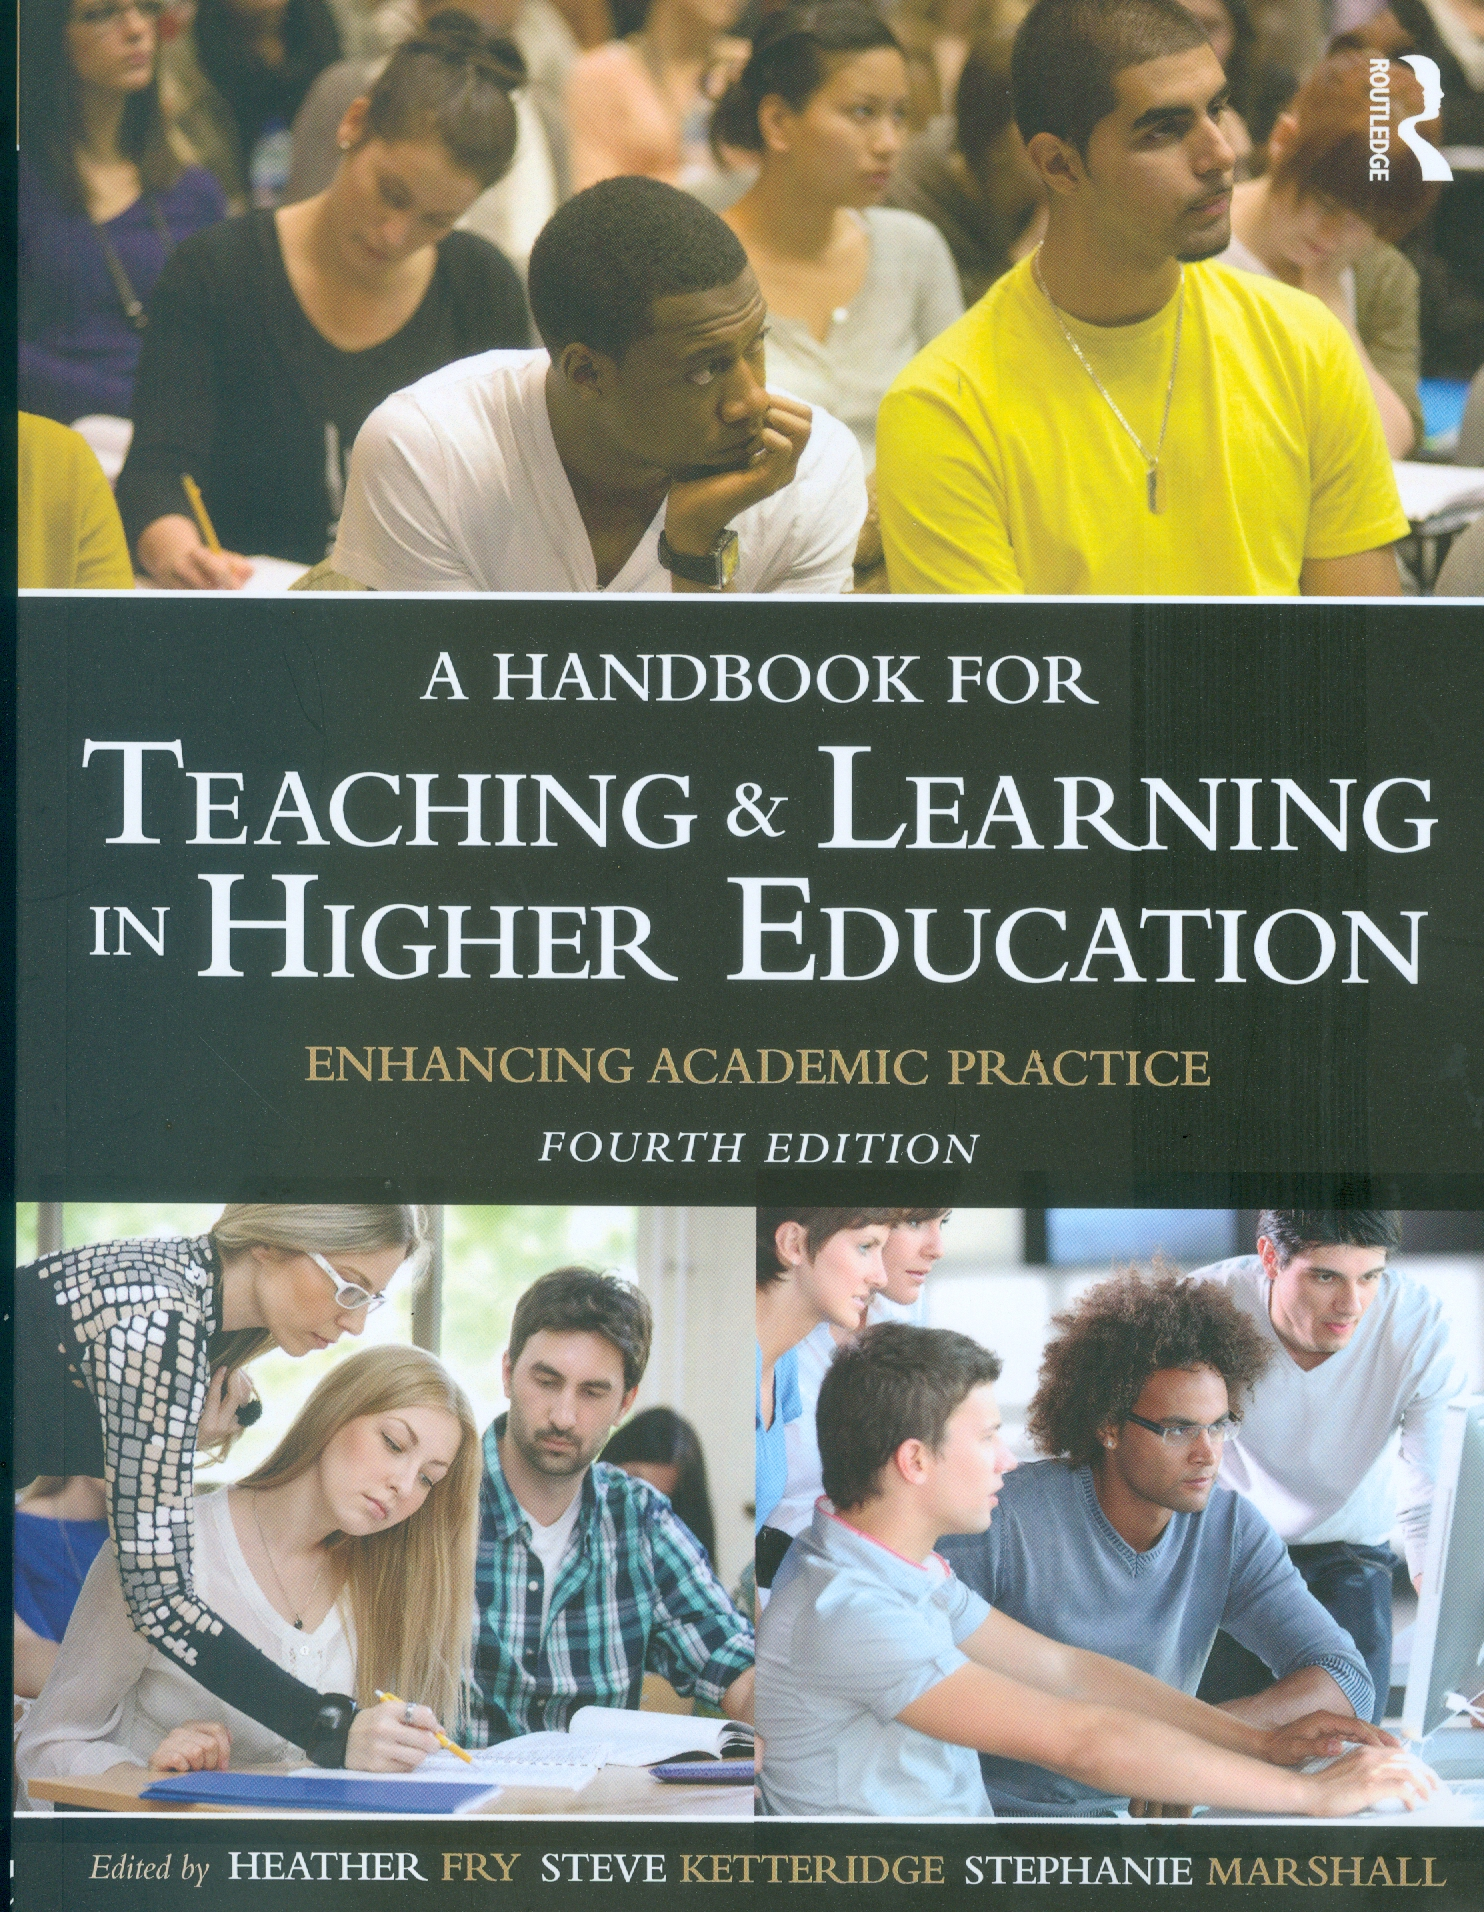 teaching and learning higher education.jpg